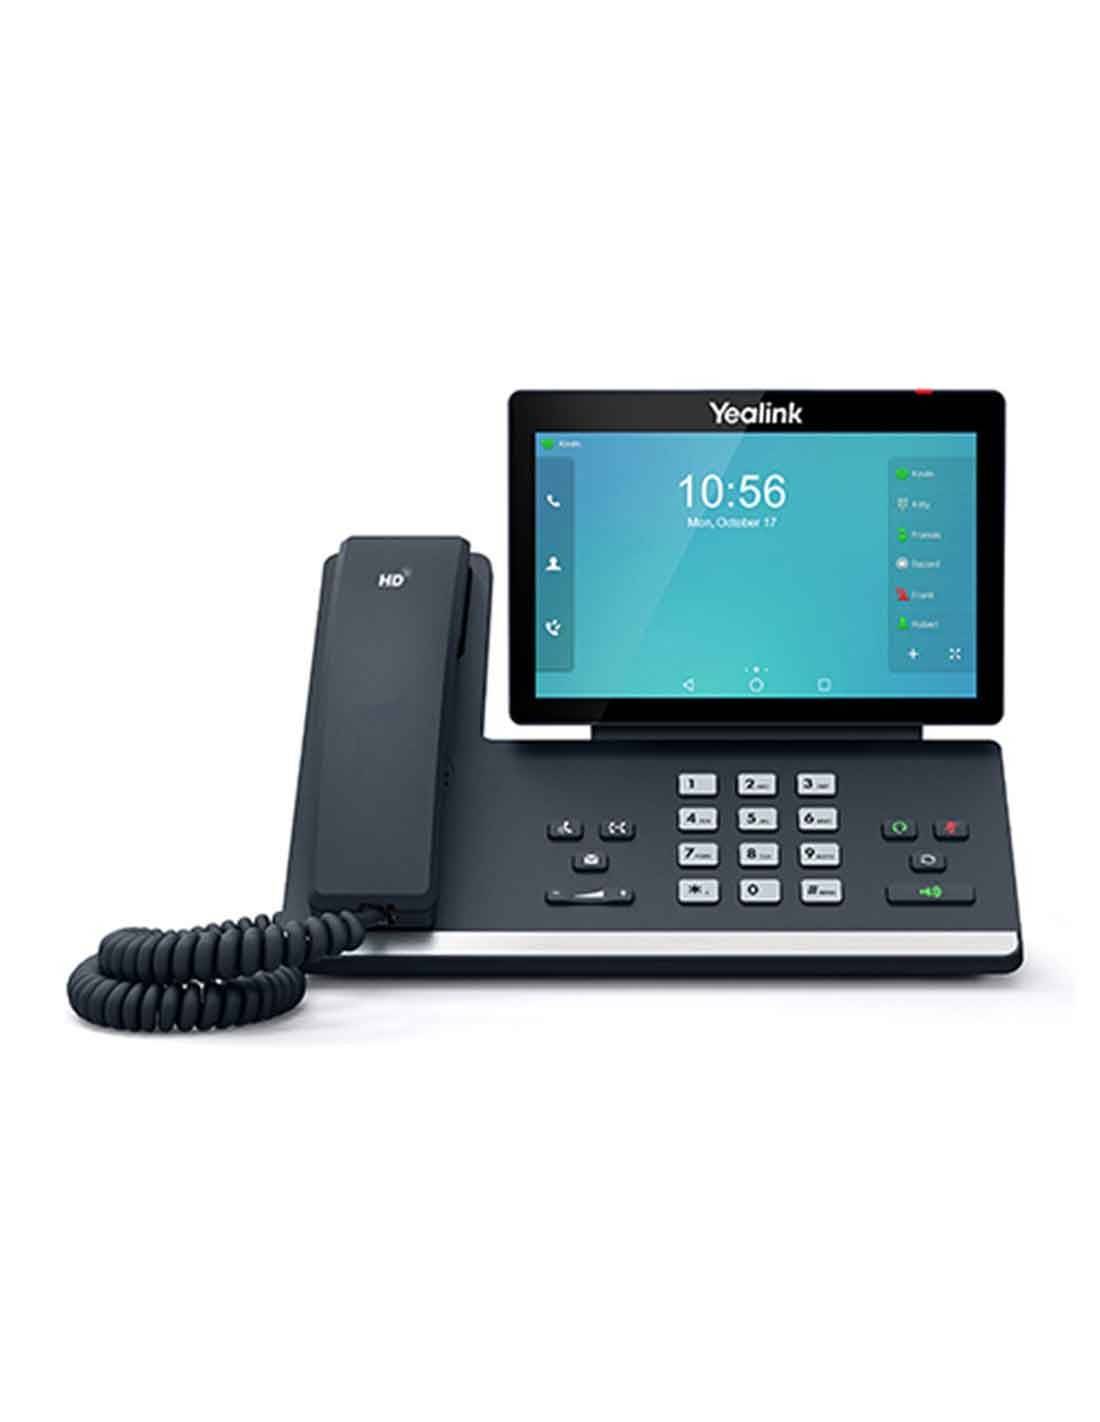 Yealink SIP-T56A IP Phone at a cheap price and fast free delivery in Dubai